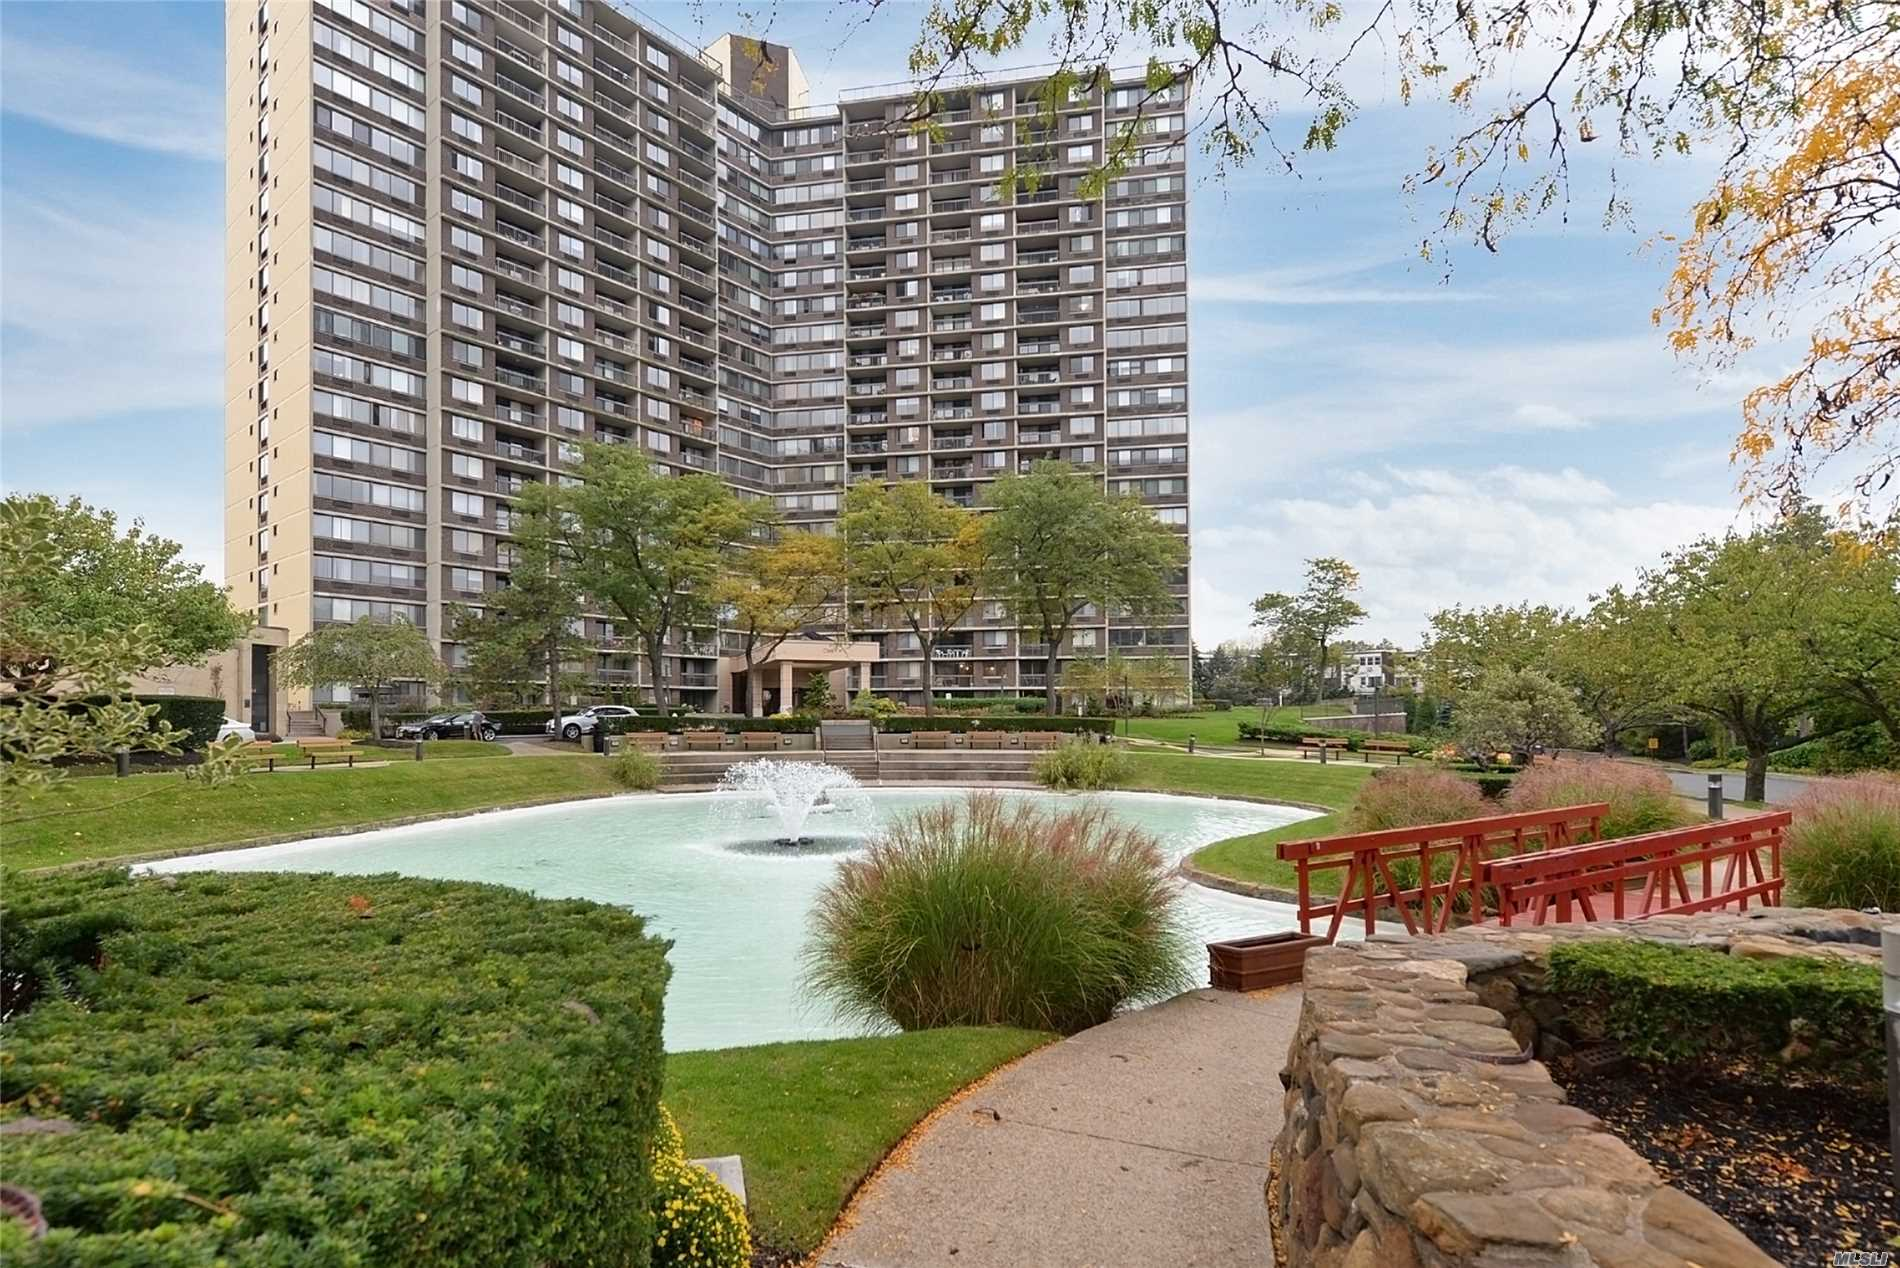 Fabulous Bay Club Gated Community. 24 Hour Security. Doorman / Concierge.** Amazing Deal** On A Large Corner 2 Bedroom / 2 Bathroom Unit With Terrace. Year Round Swim & Fitness Center, Indoor Parking (Extra Fees). Free Tennis Club. New Children's Playground. Underground Stores. On Premises Restaurant. Best Location .... Near Everything.